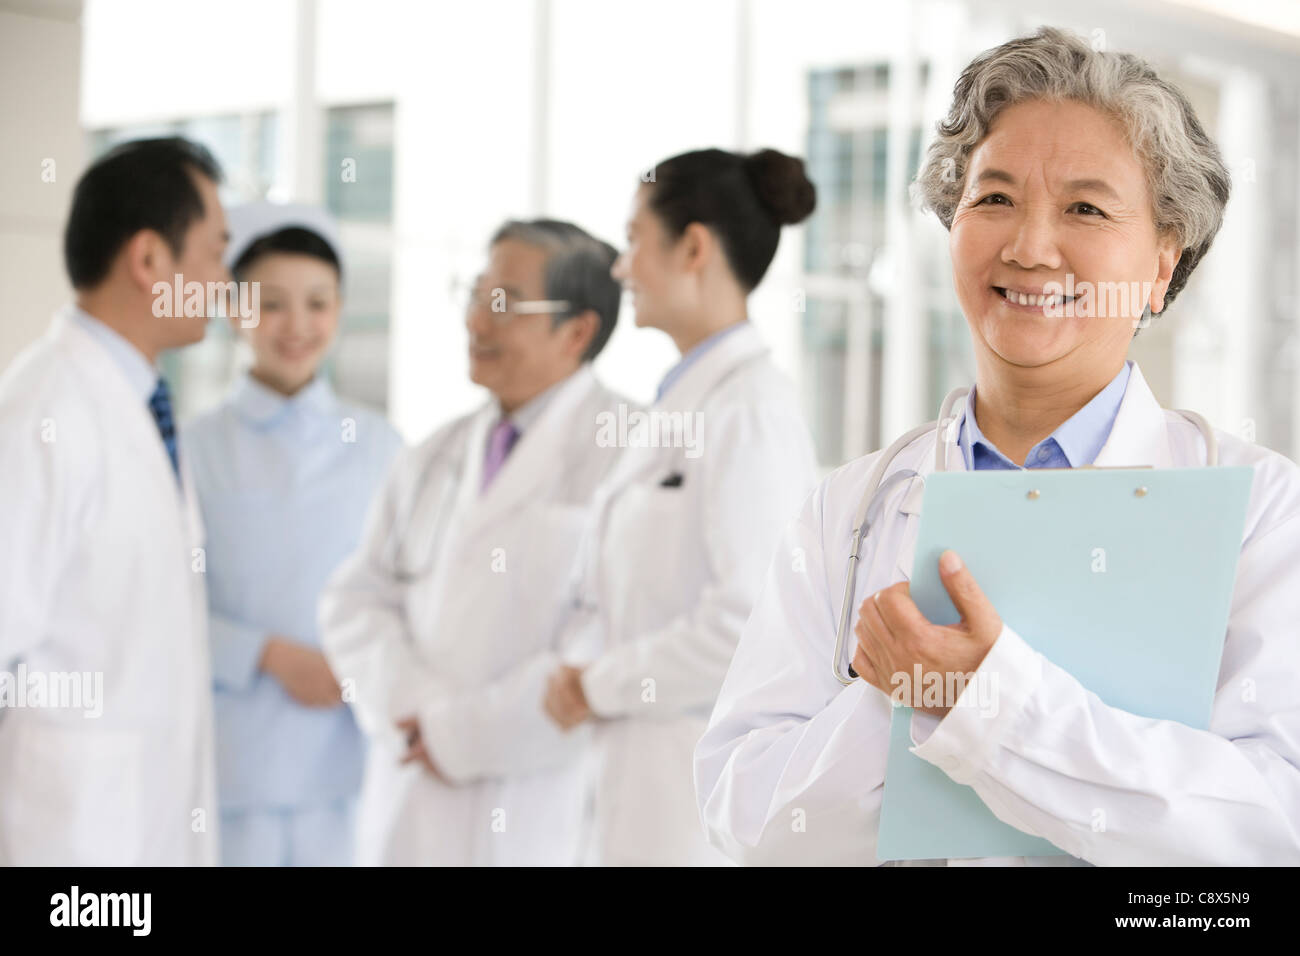 pictures Busy Doctor Hurried Nurse